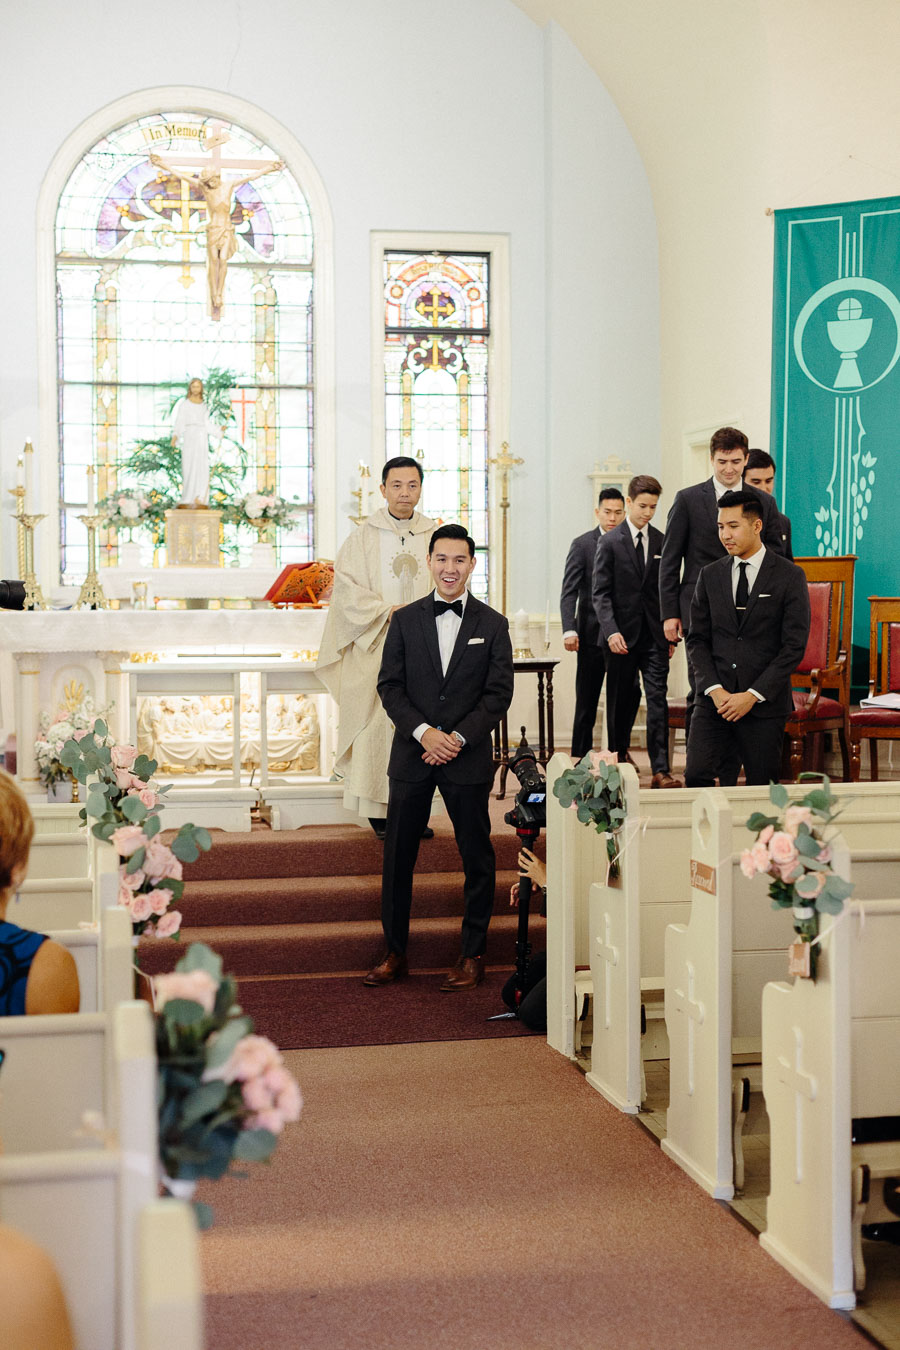 groom-sees-bride-for-first-time-processional-wedding-ceremony